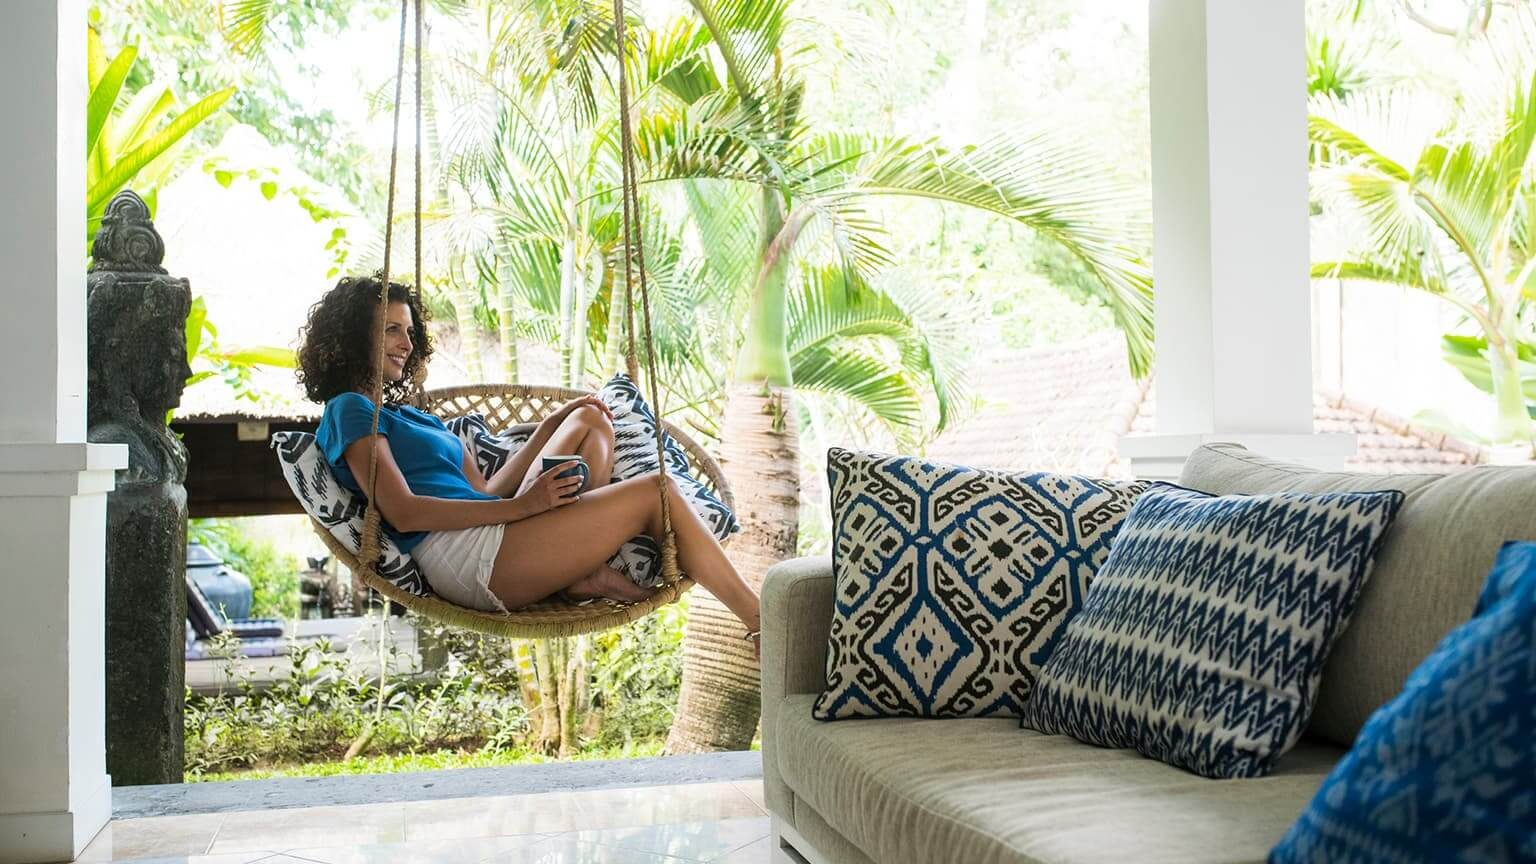 Smiling woman relaxing in hanging chair, in vacation home